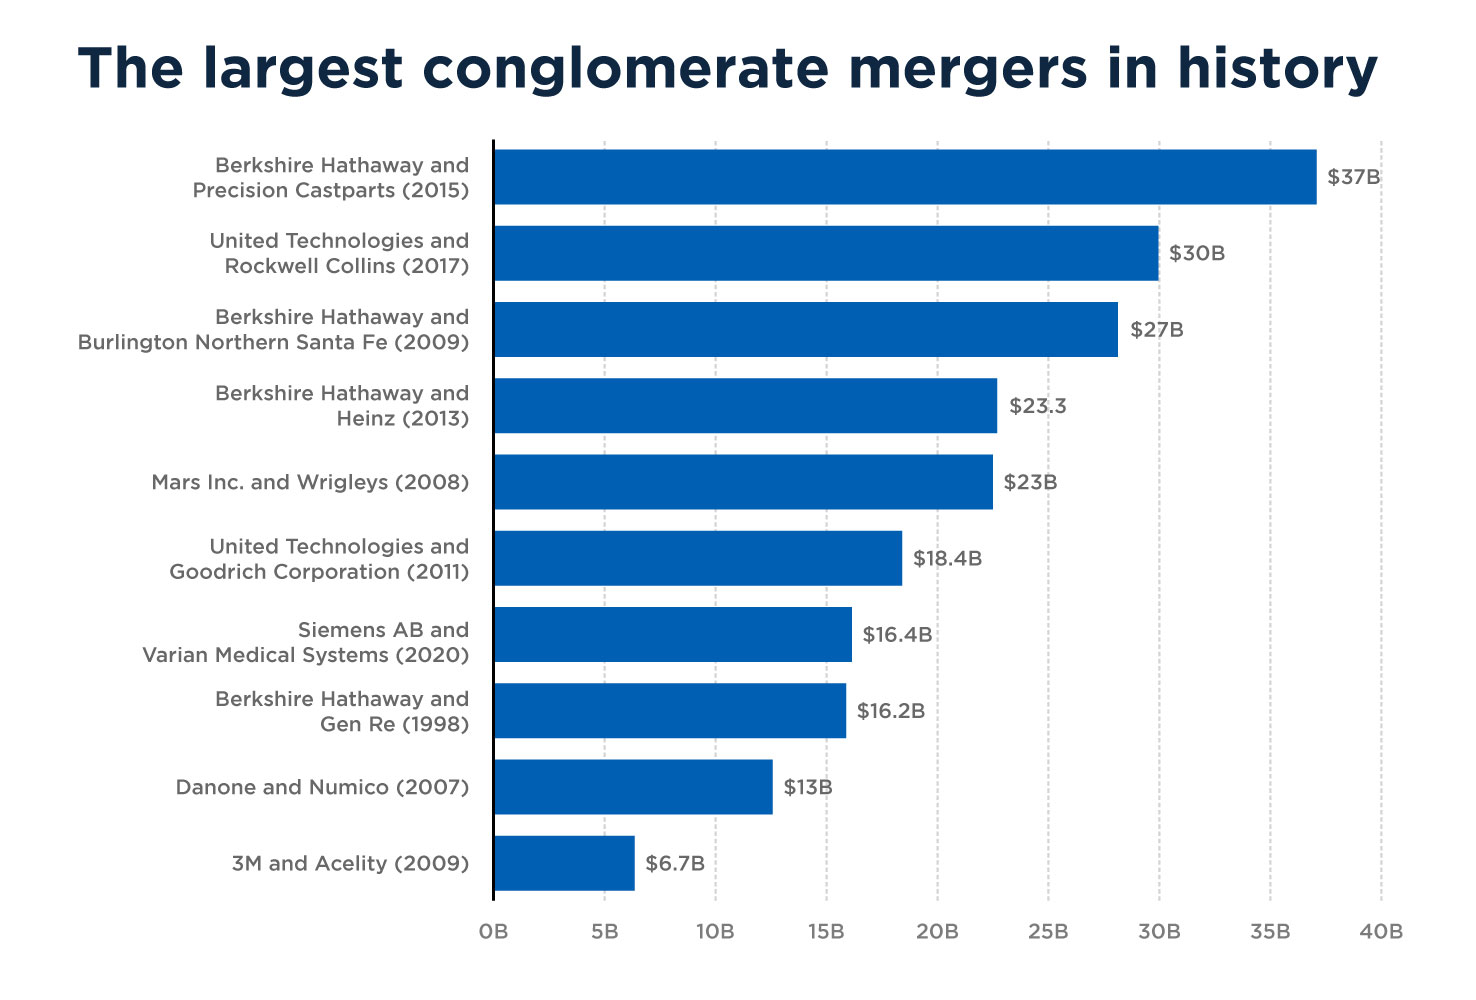 largest conglomerate mergers in history